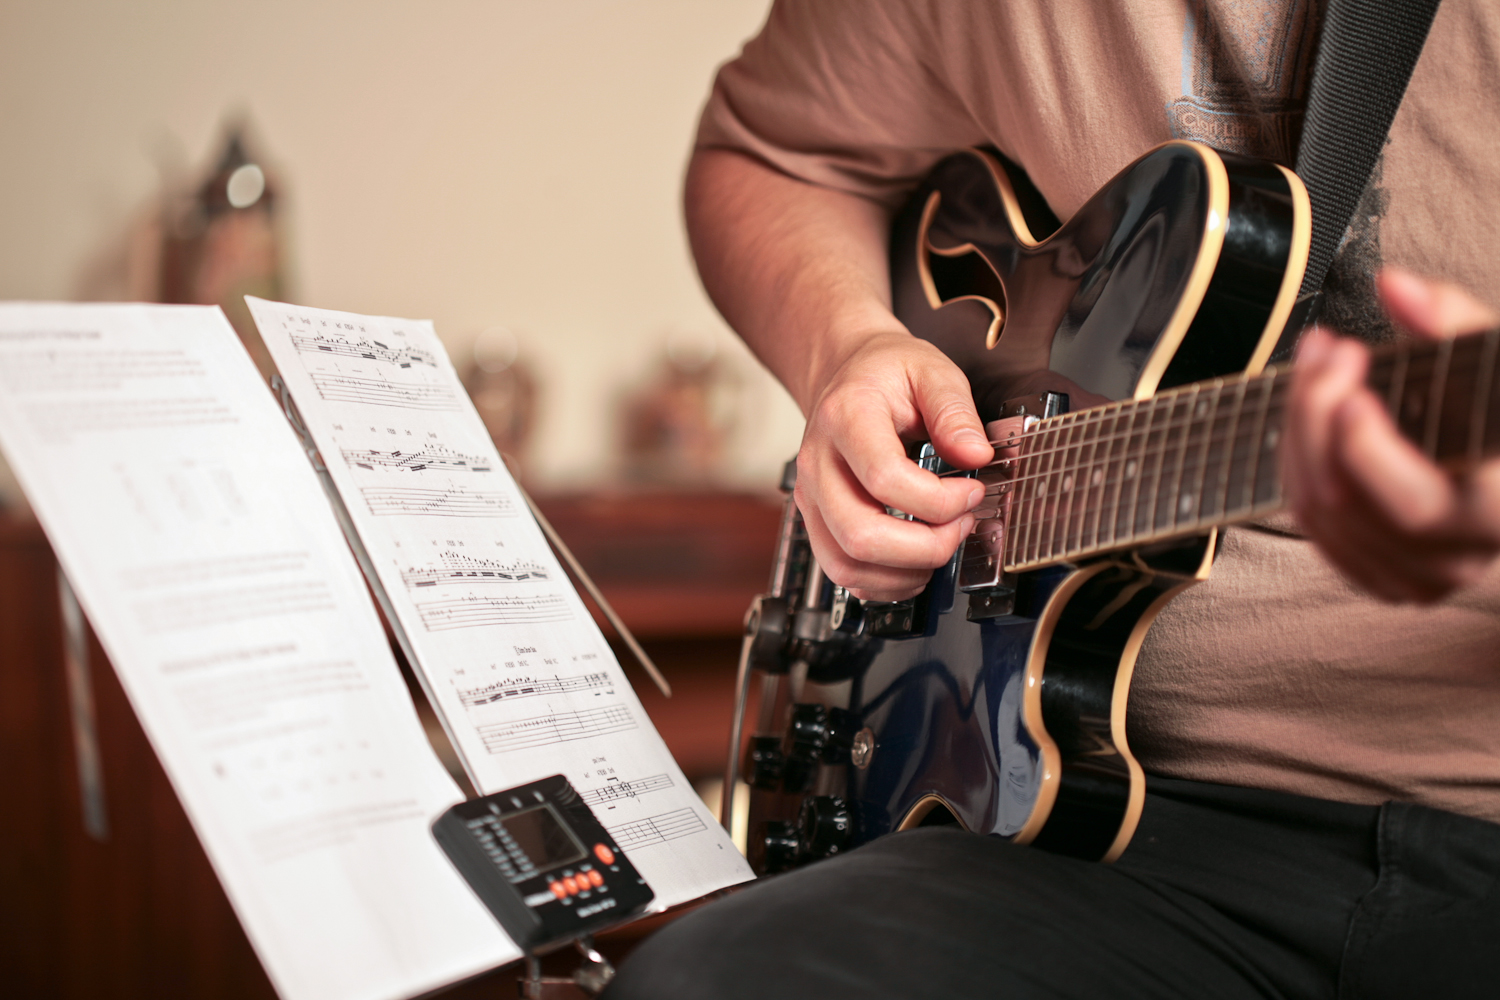 Learn Songs Faster On Guitar With These Quick Tips